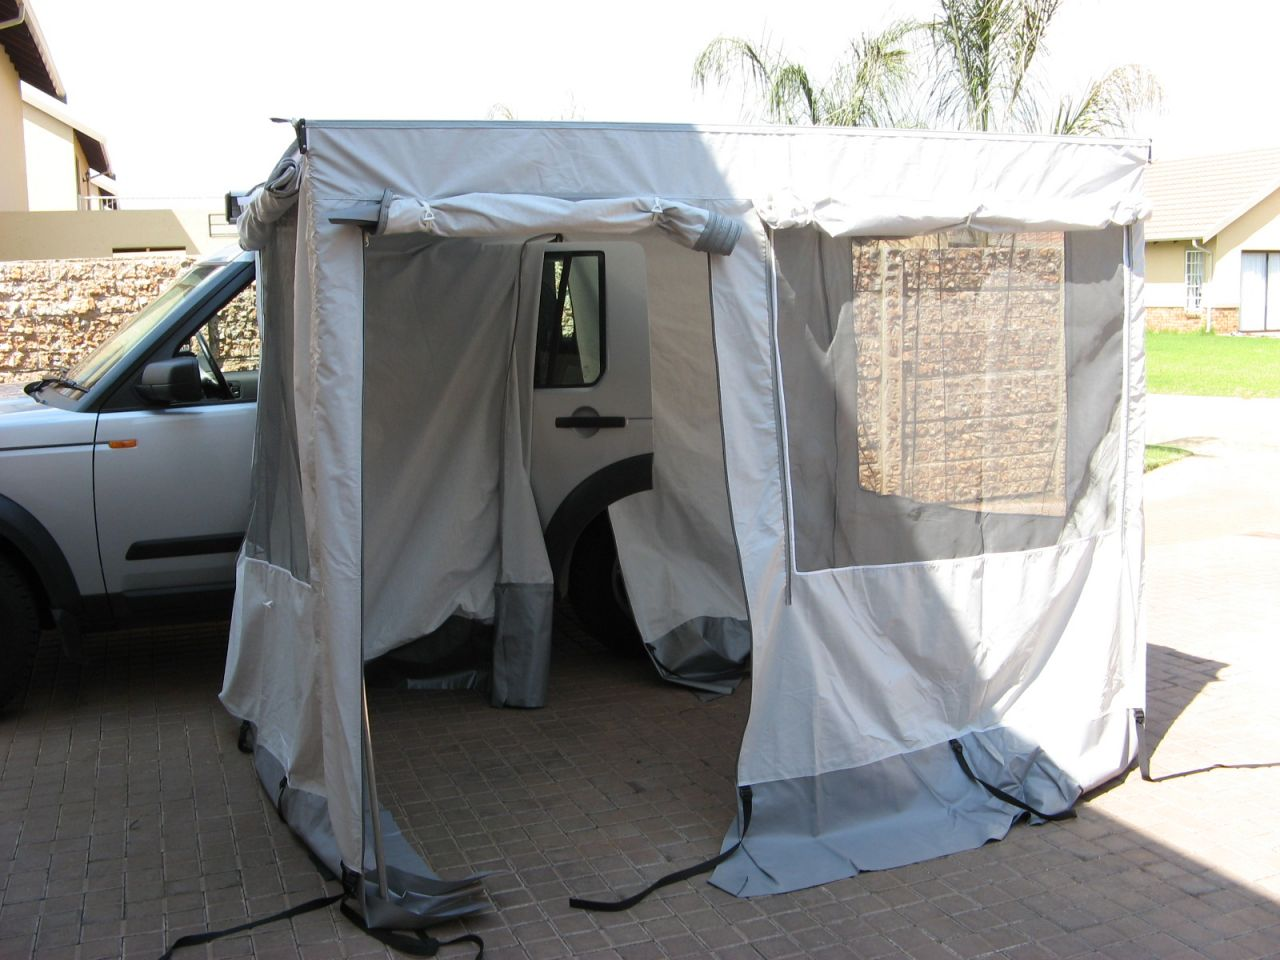 Disco3 Co Uk View Topic Car Awning